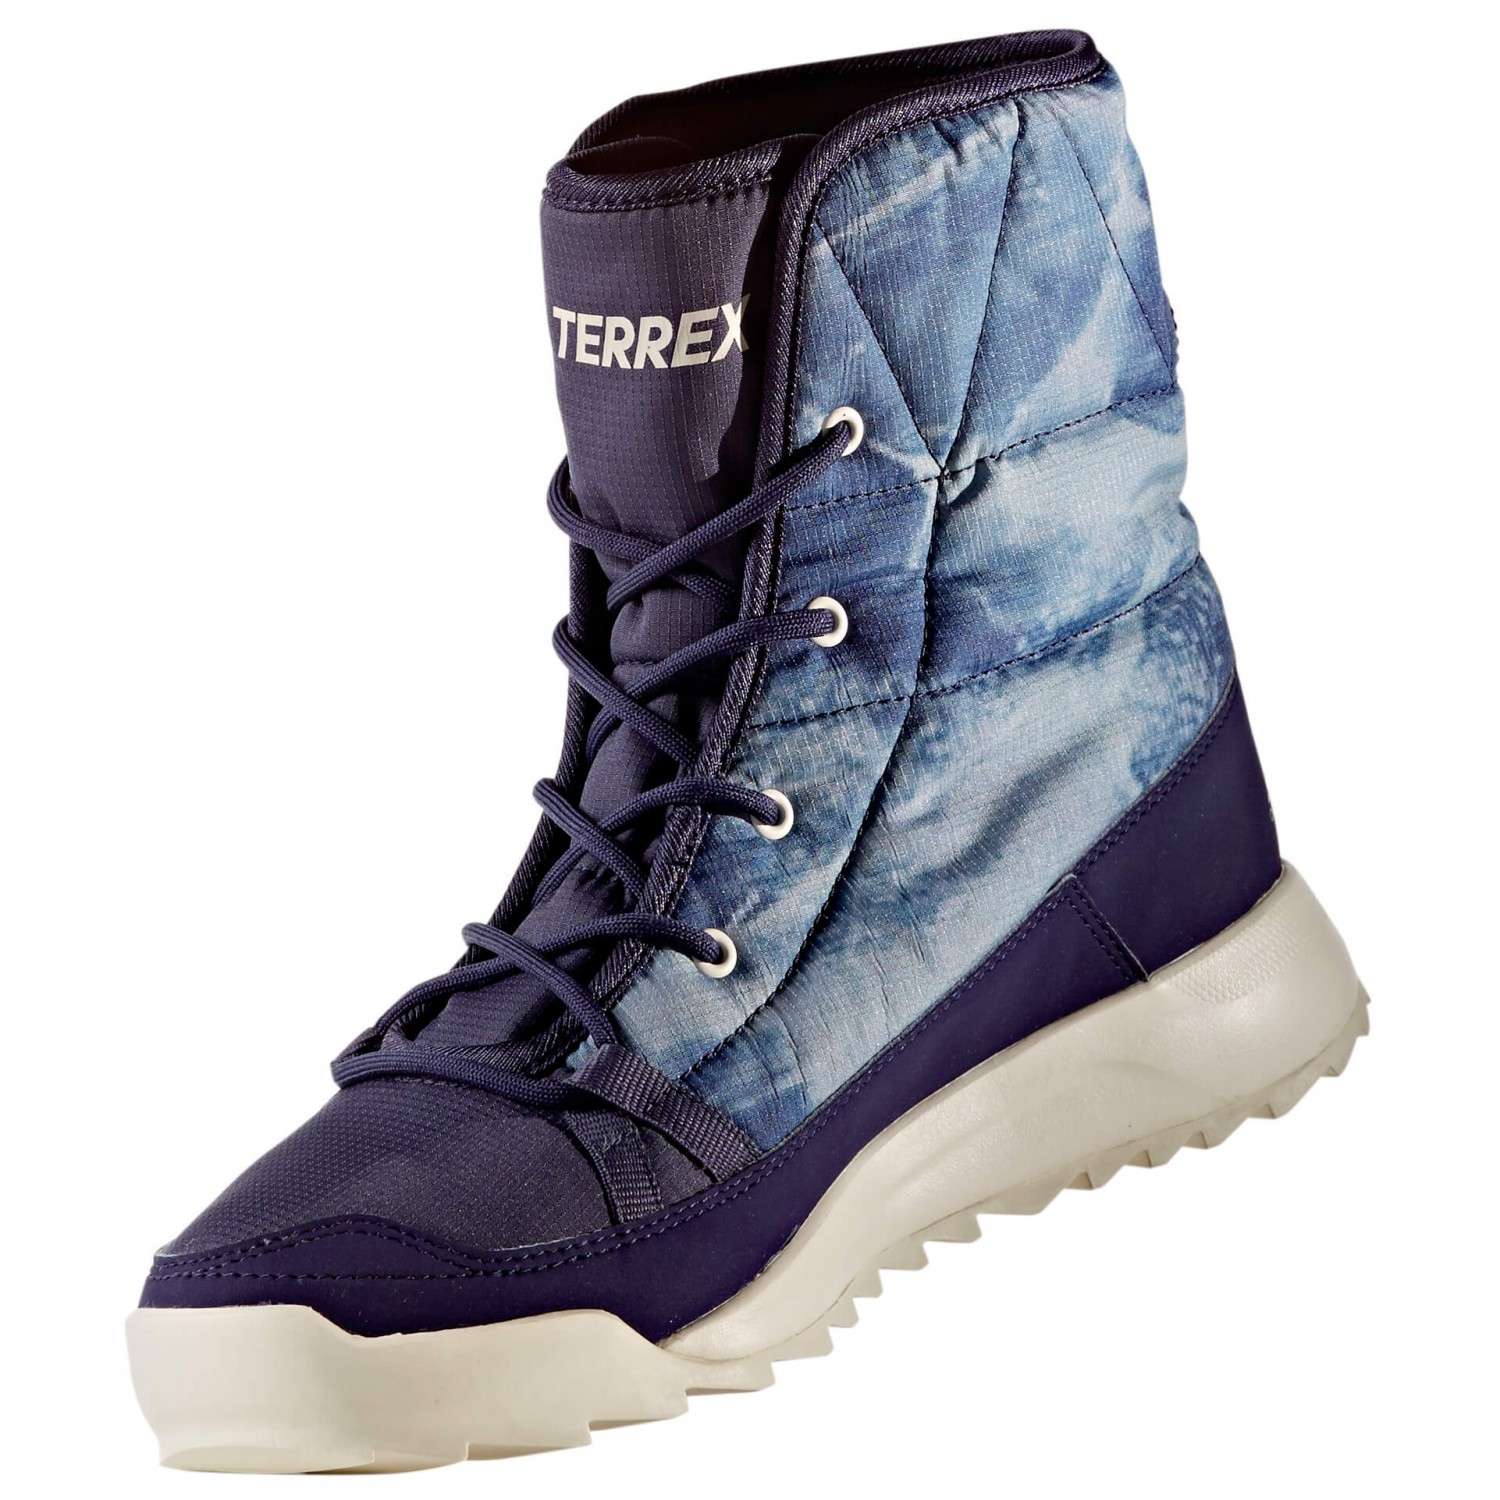 adidas - Women's Terrex Choleah Padded CP - Winter boots ...